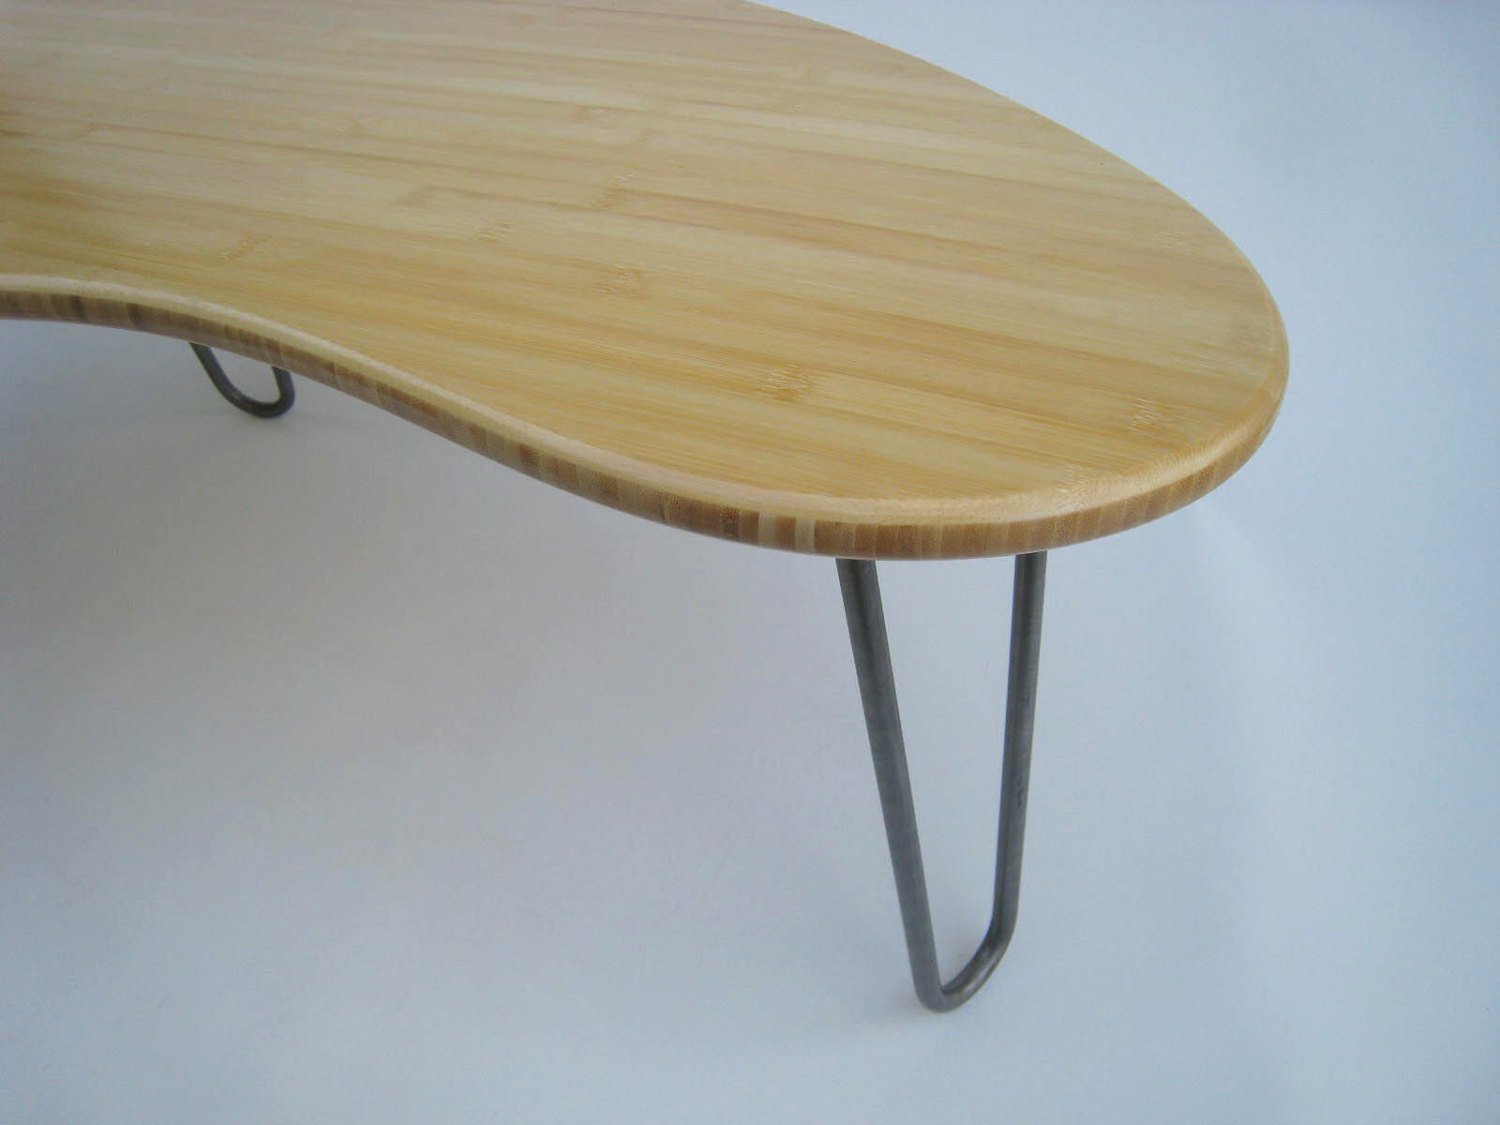 Mid Century Modern Coffee Table Kidney Bean Shaped Amorphic Curves Atomic Era Design In